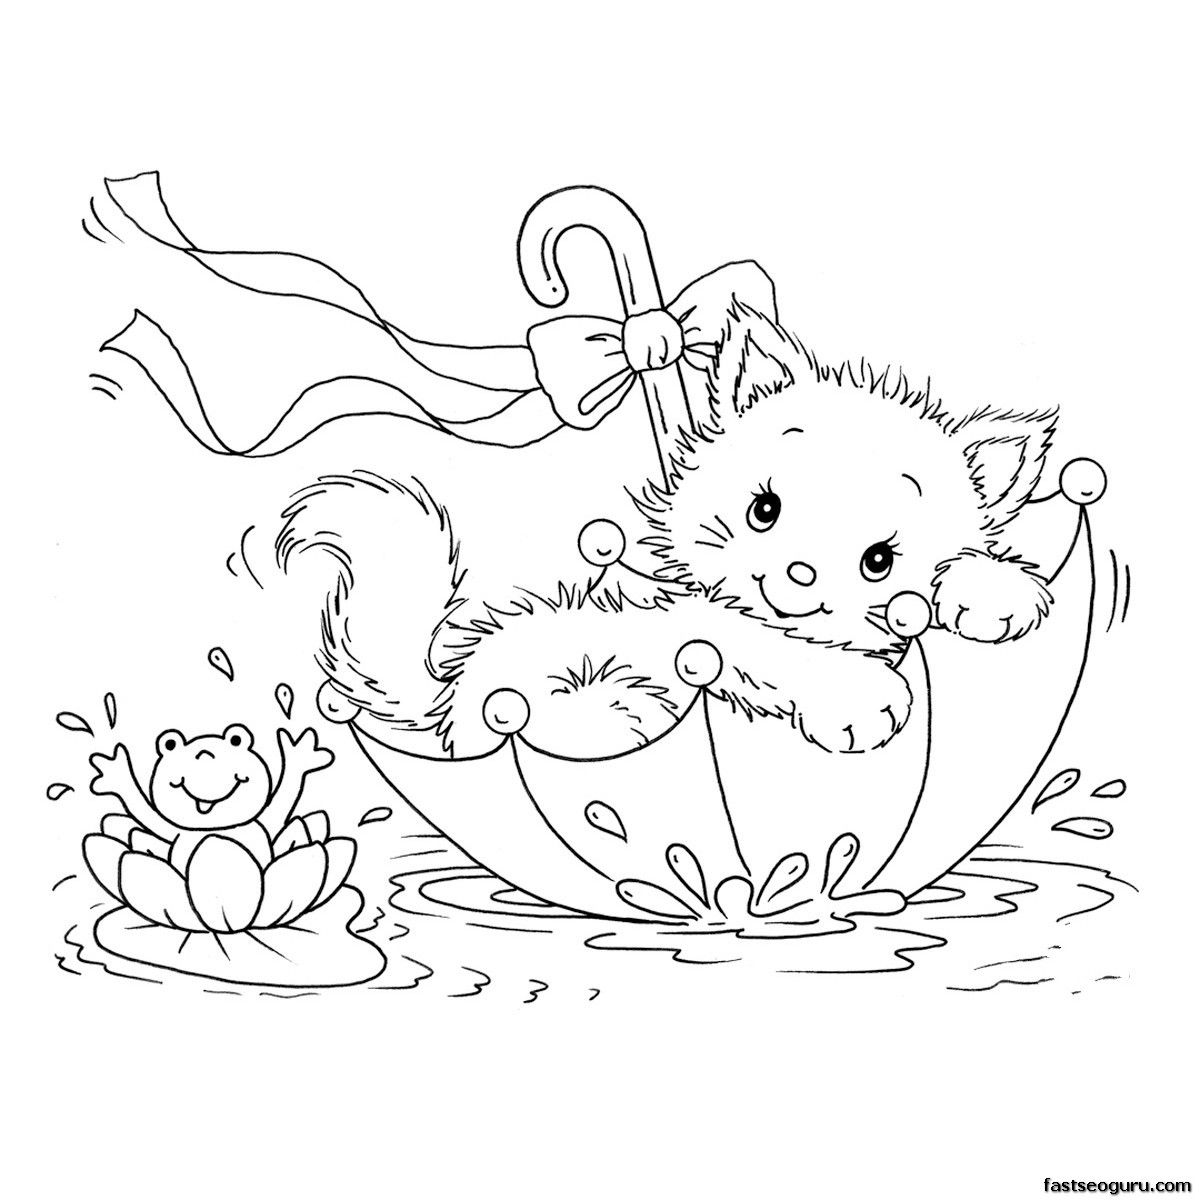 printabel coloring pages kitty cat and frog in umbrella printable coloring pages for kids would be very cut adapted for embroidery